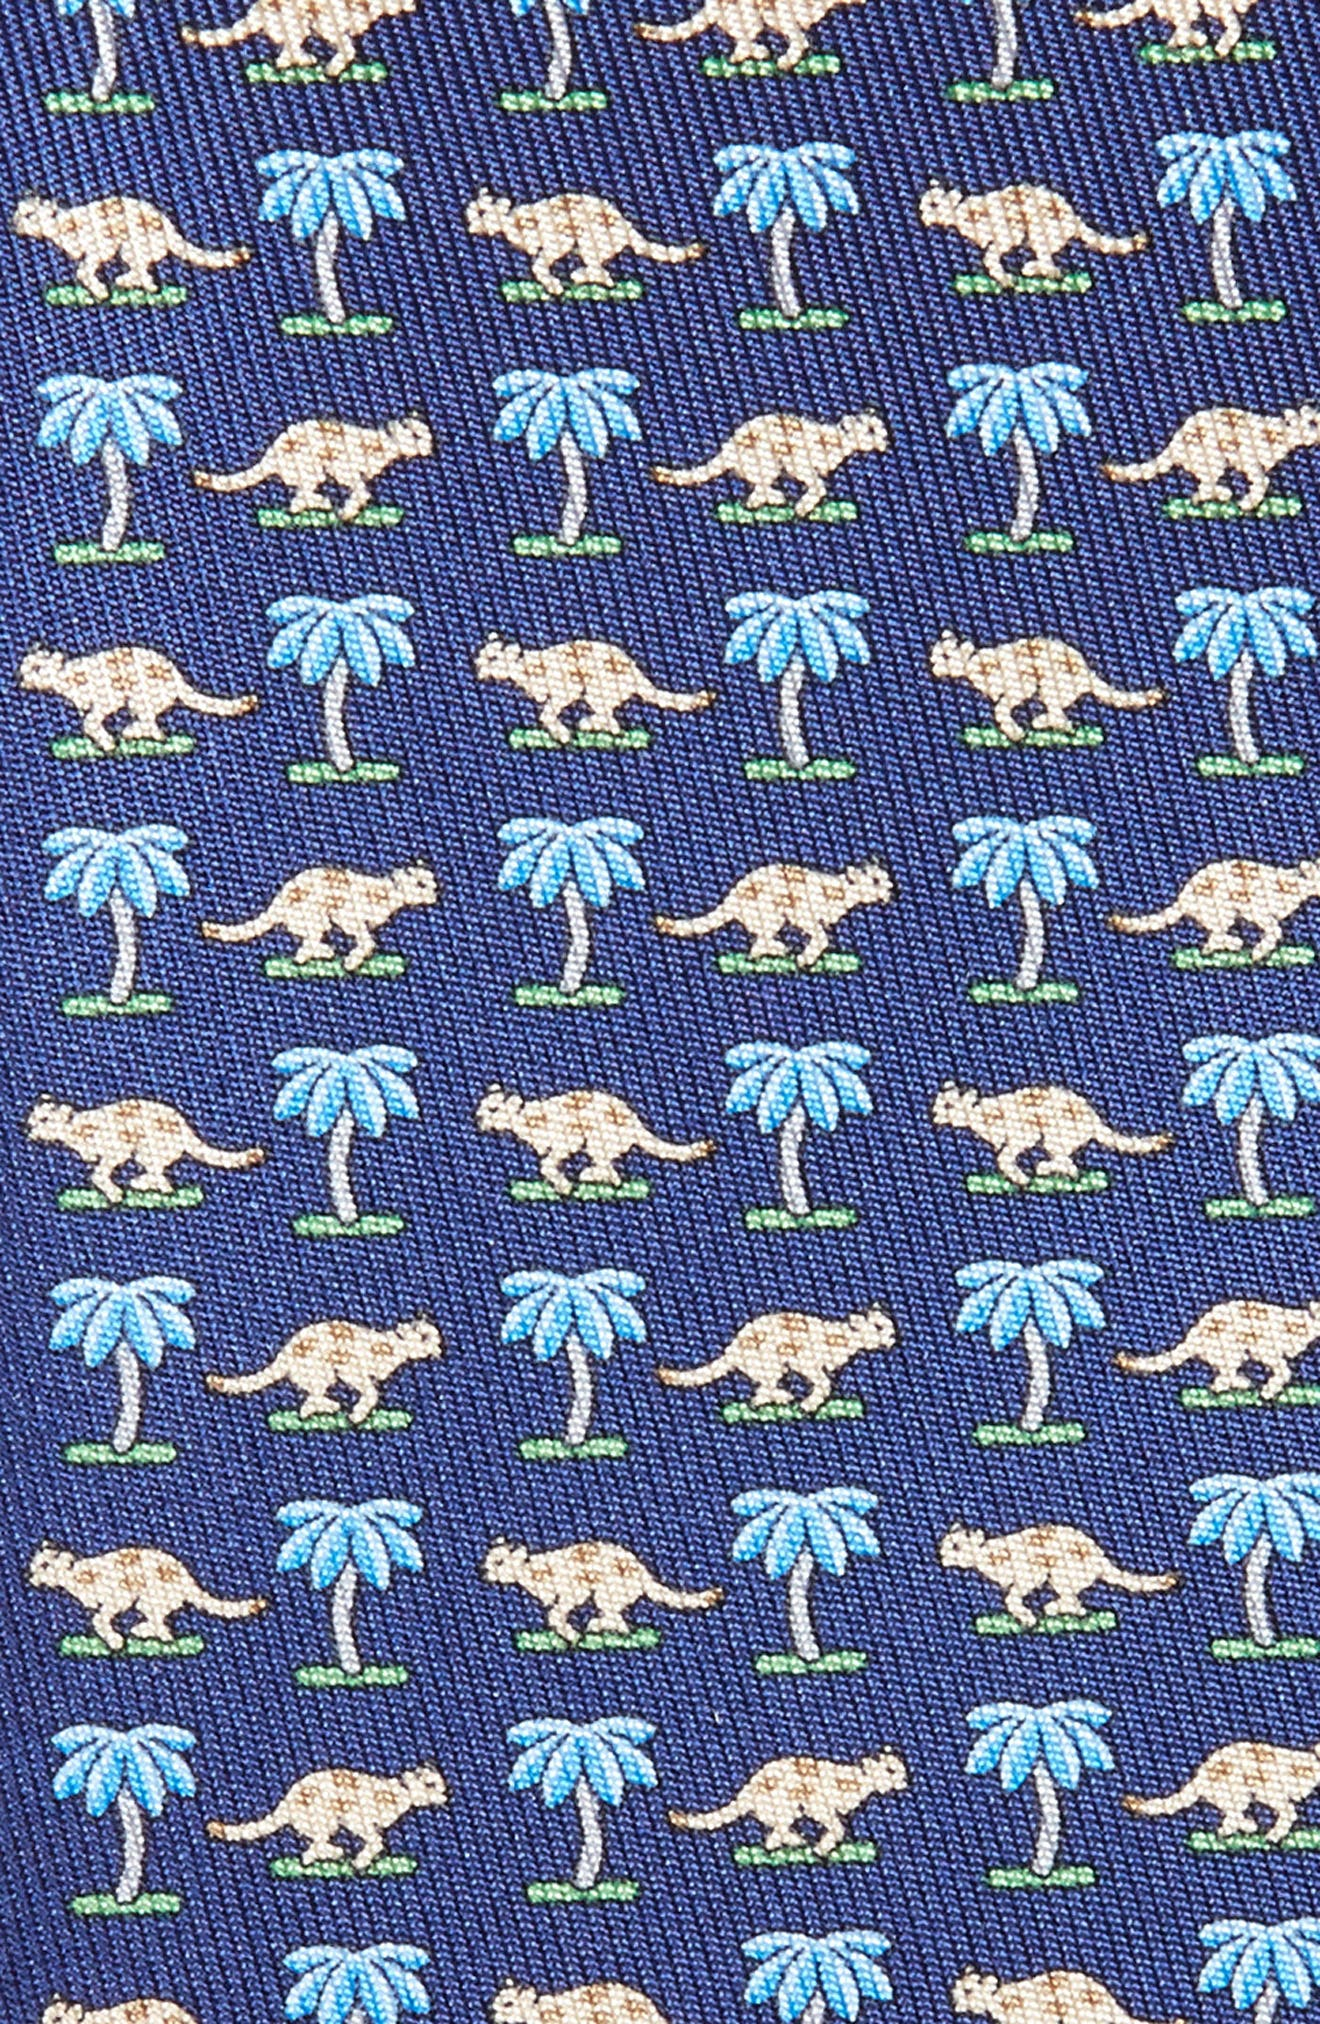 Dinosaur Print Silk Tie,                             Alternate thumbnail 2, color,                             492